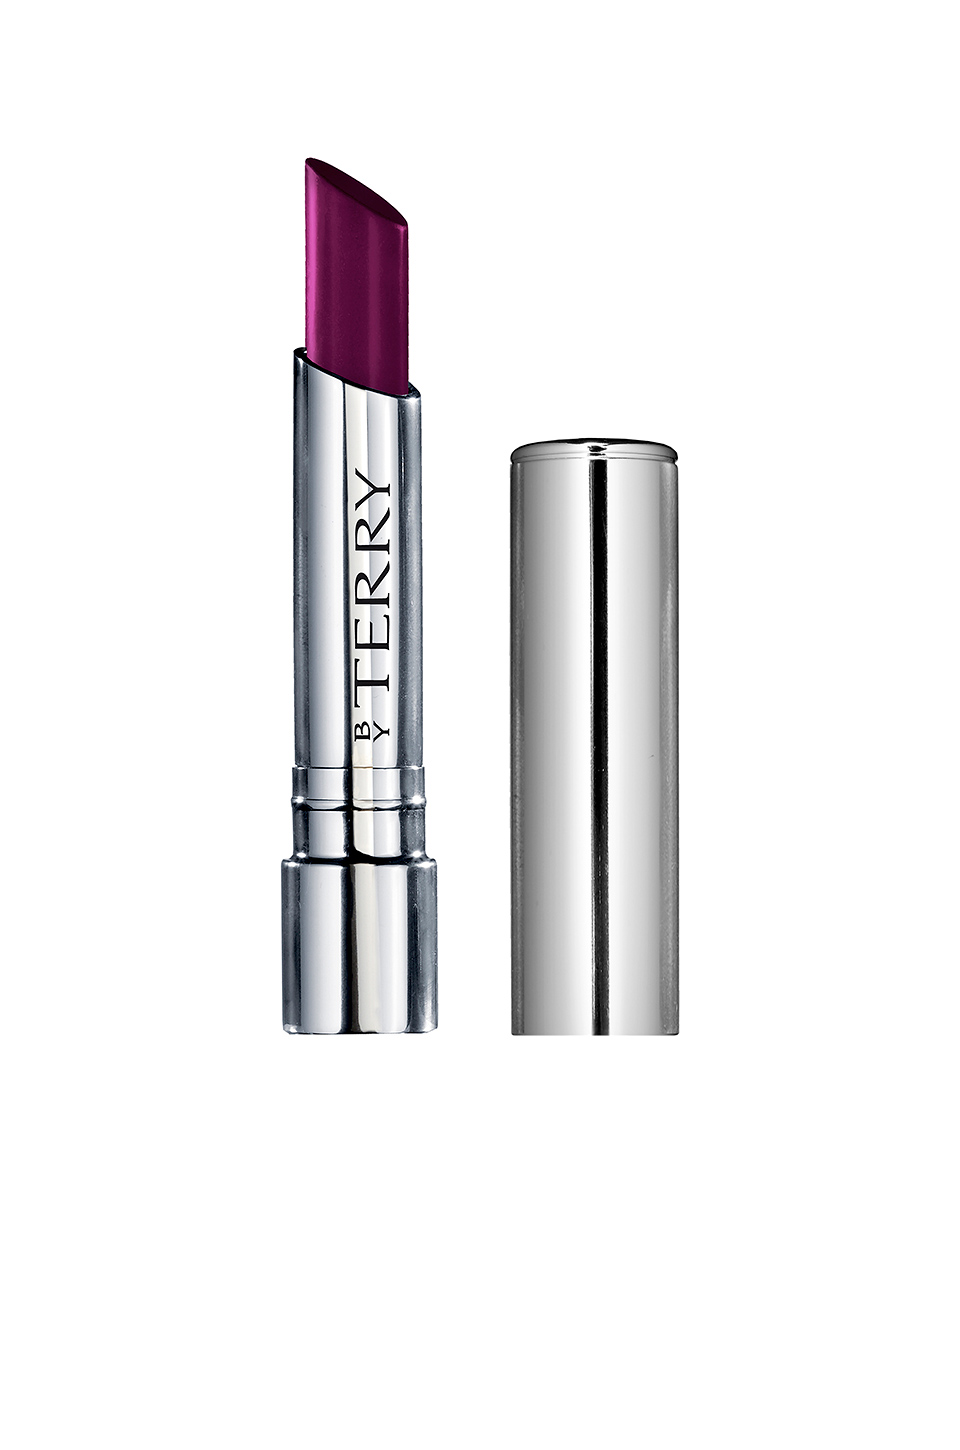 By Terry Hyaluronic Sheer Rouge Hydra-Balm Lipstick in Plum Plump Girl